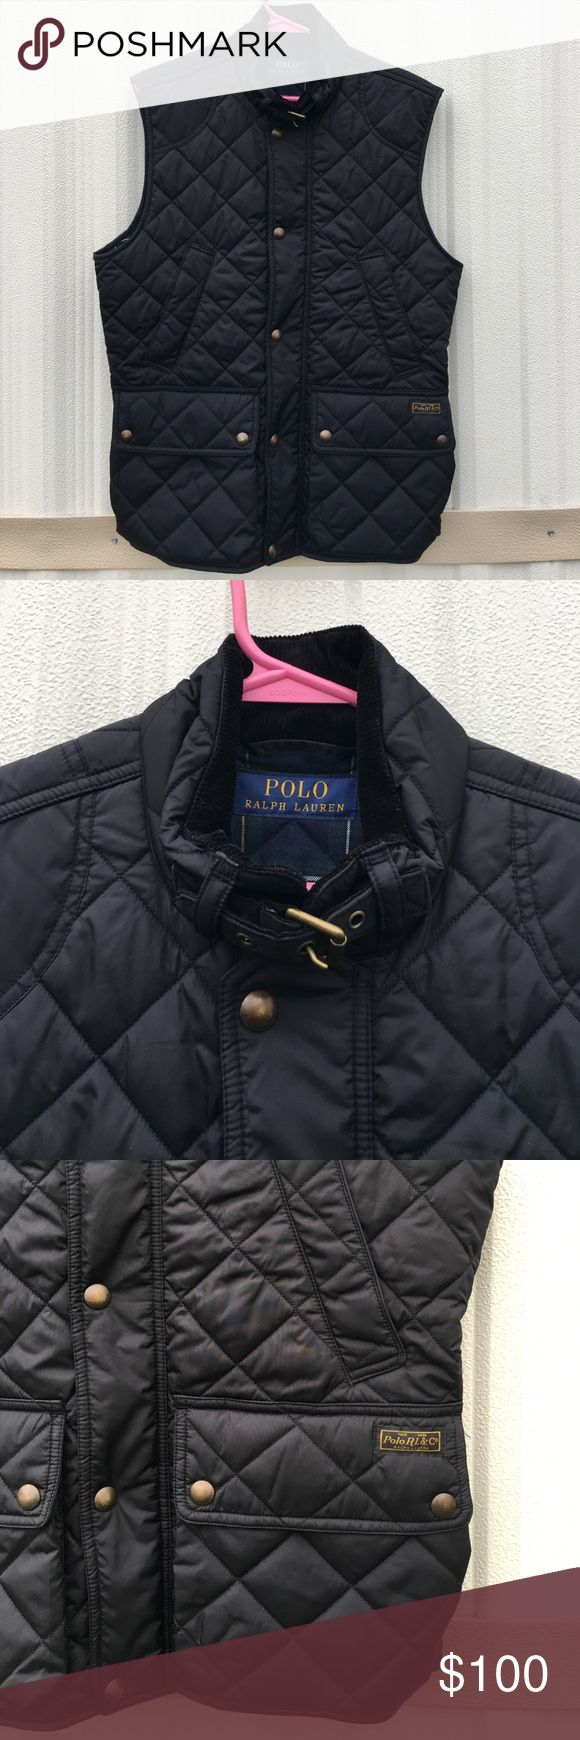 "Polo Ralph Lauren Blue Label Puffer Vest Size S Polo Ralph Lauren Blue Label Puffer Vest Size Small 20"" Underarm 28"" Length Polo by Ralph Lauren Jackets & Coats Puffers"